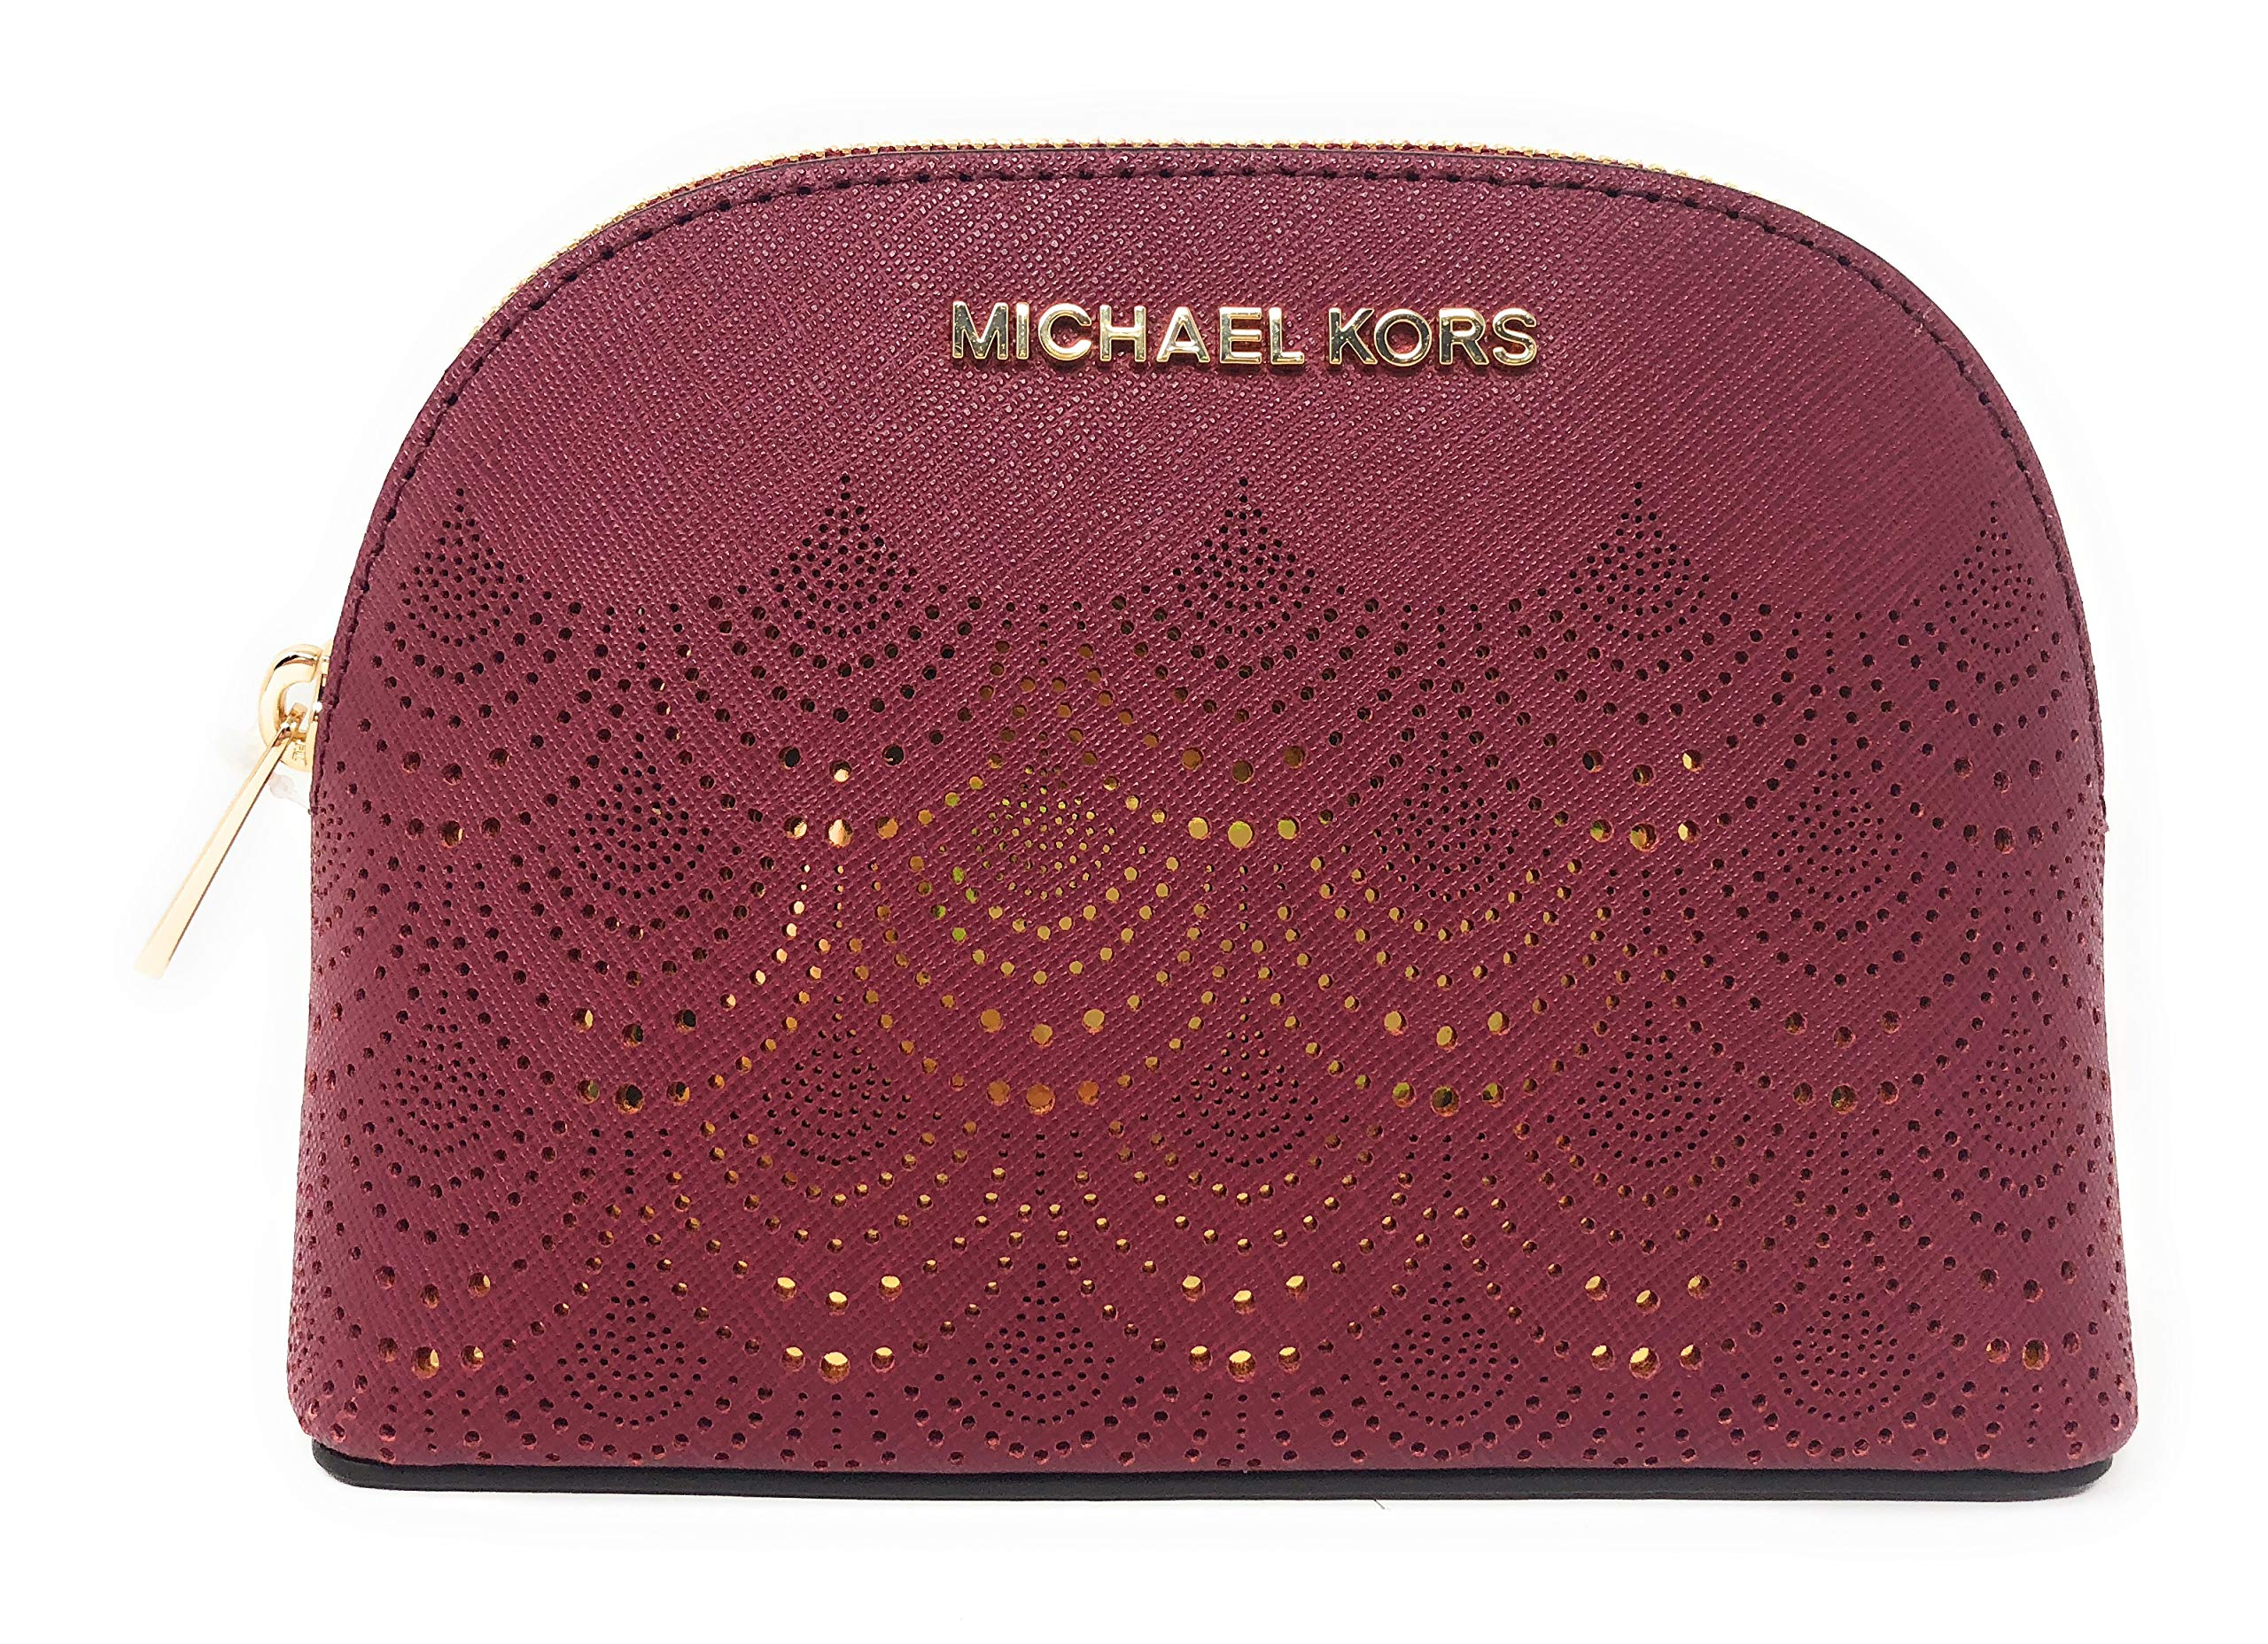 Michael Kors Jet Set Travel Saffiano Leather Women's Large Travel Pouch Cosmetic Case with Gold Toned Lace Accents (Mulberry)